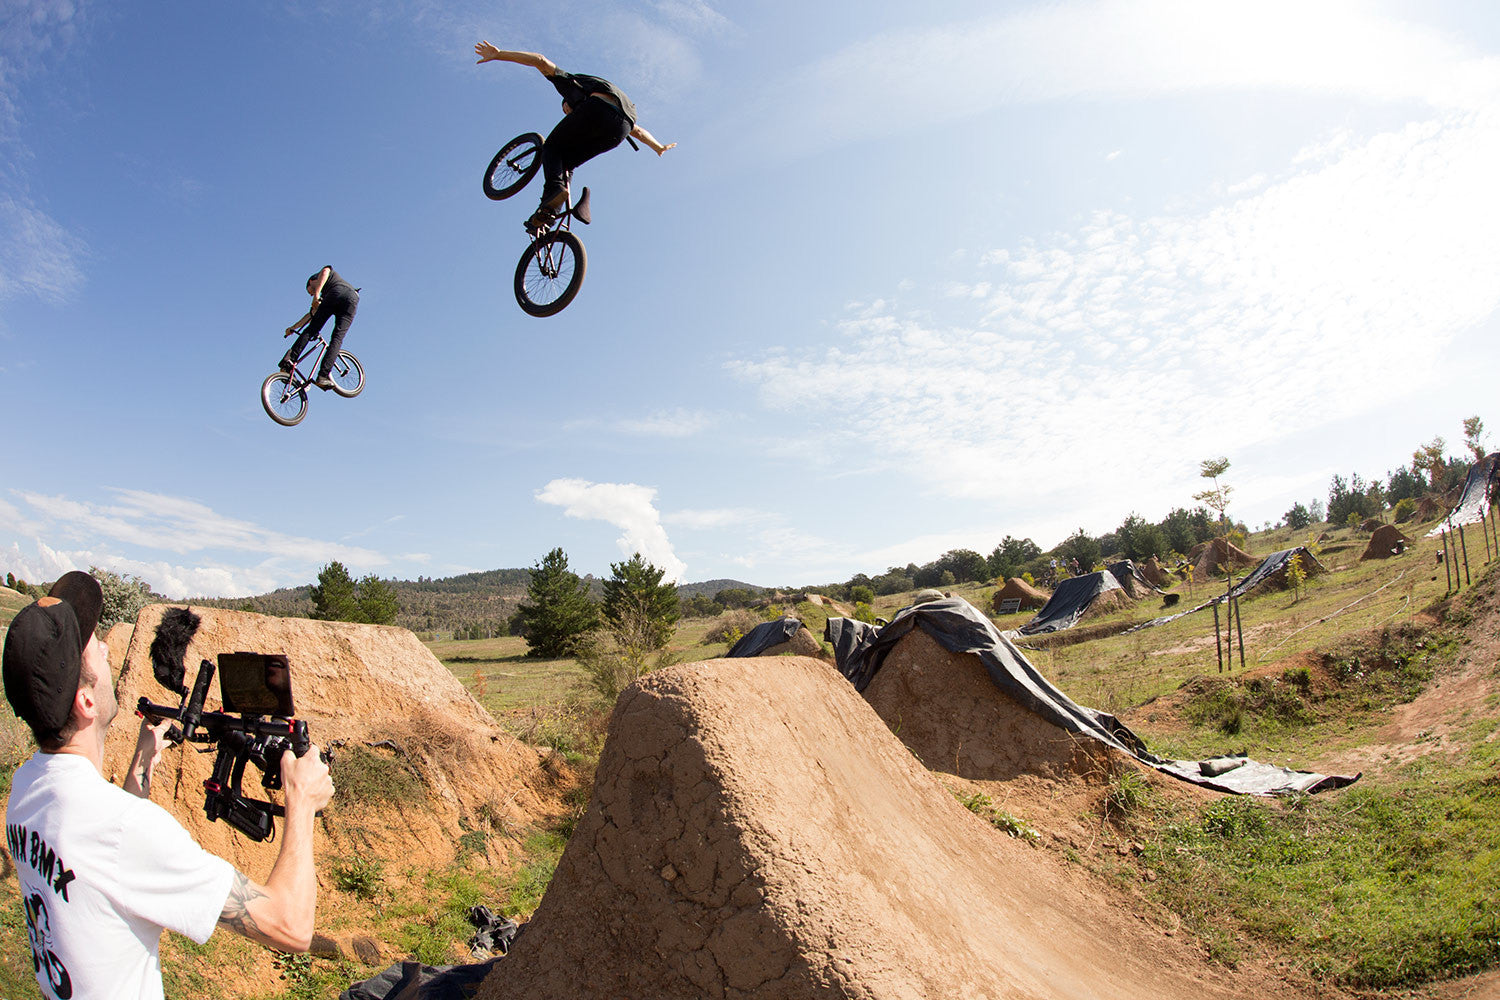 chad no hander turndown